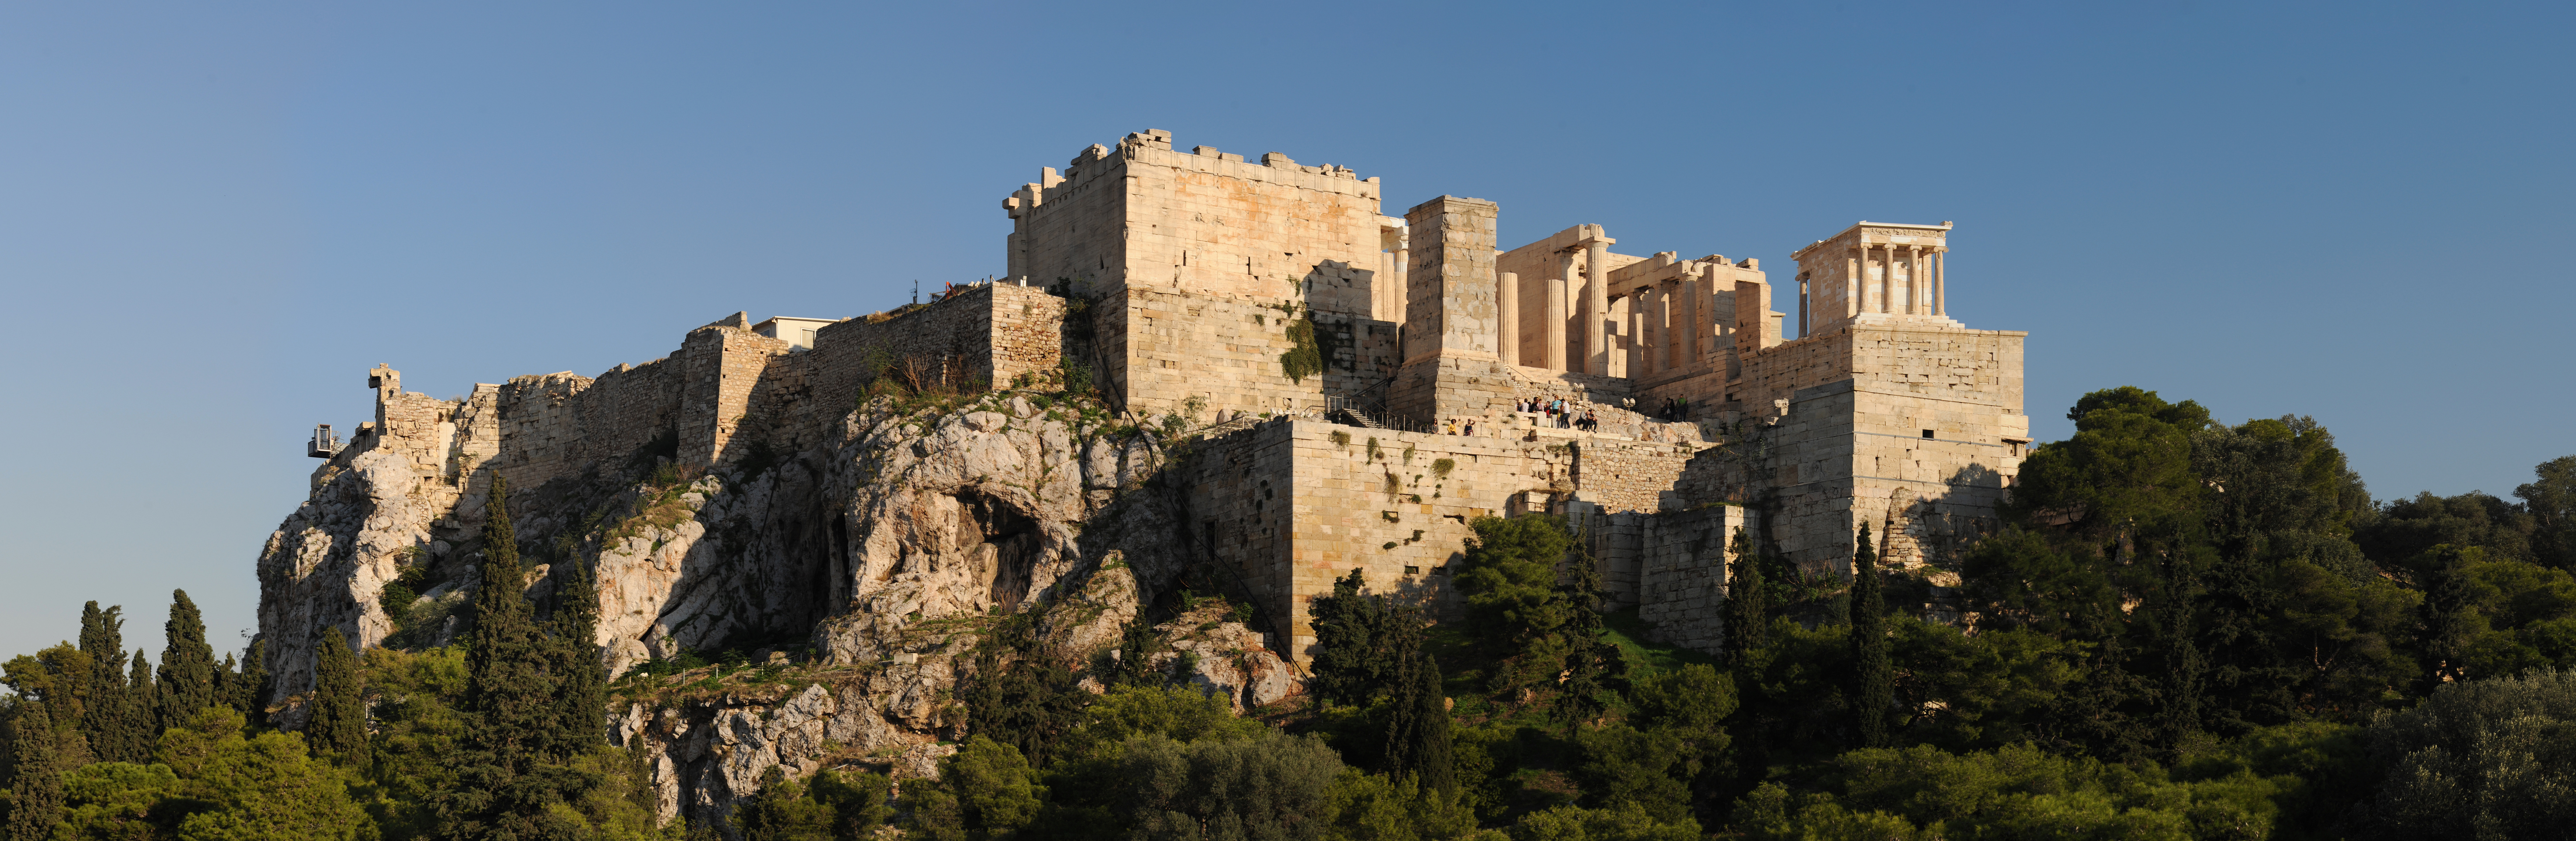 File:20101024 Acropolis panoramic view from Areopagus hill ...